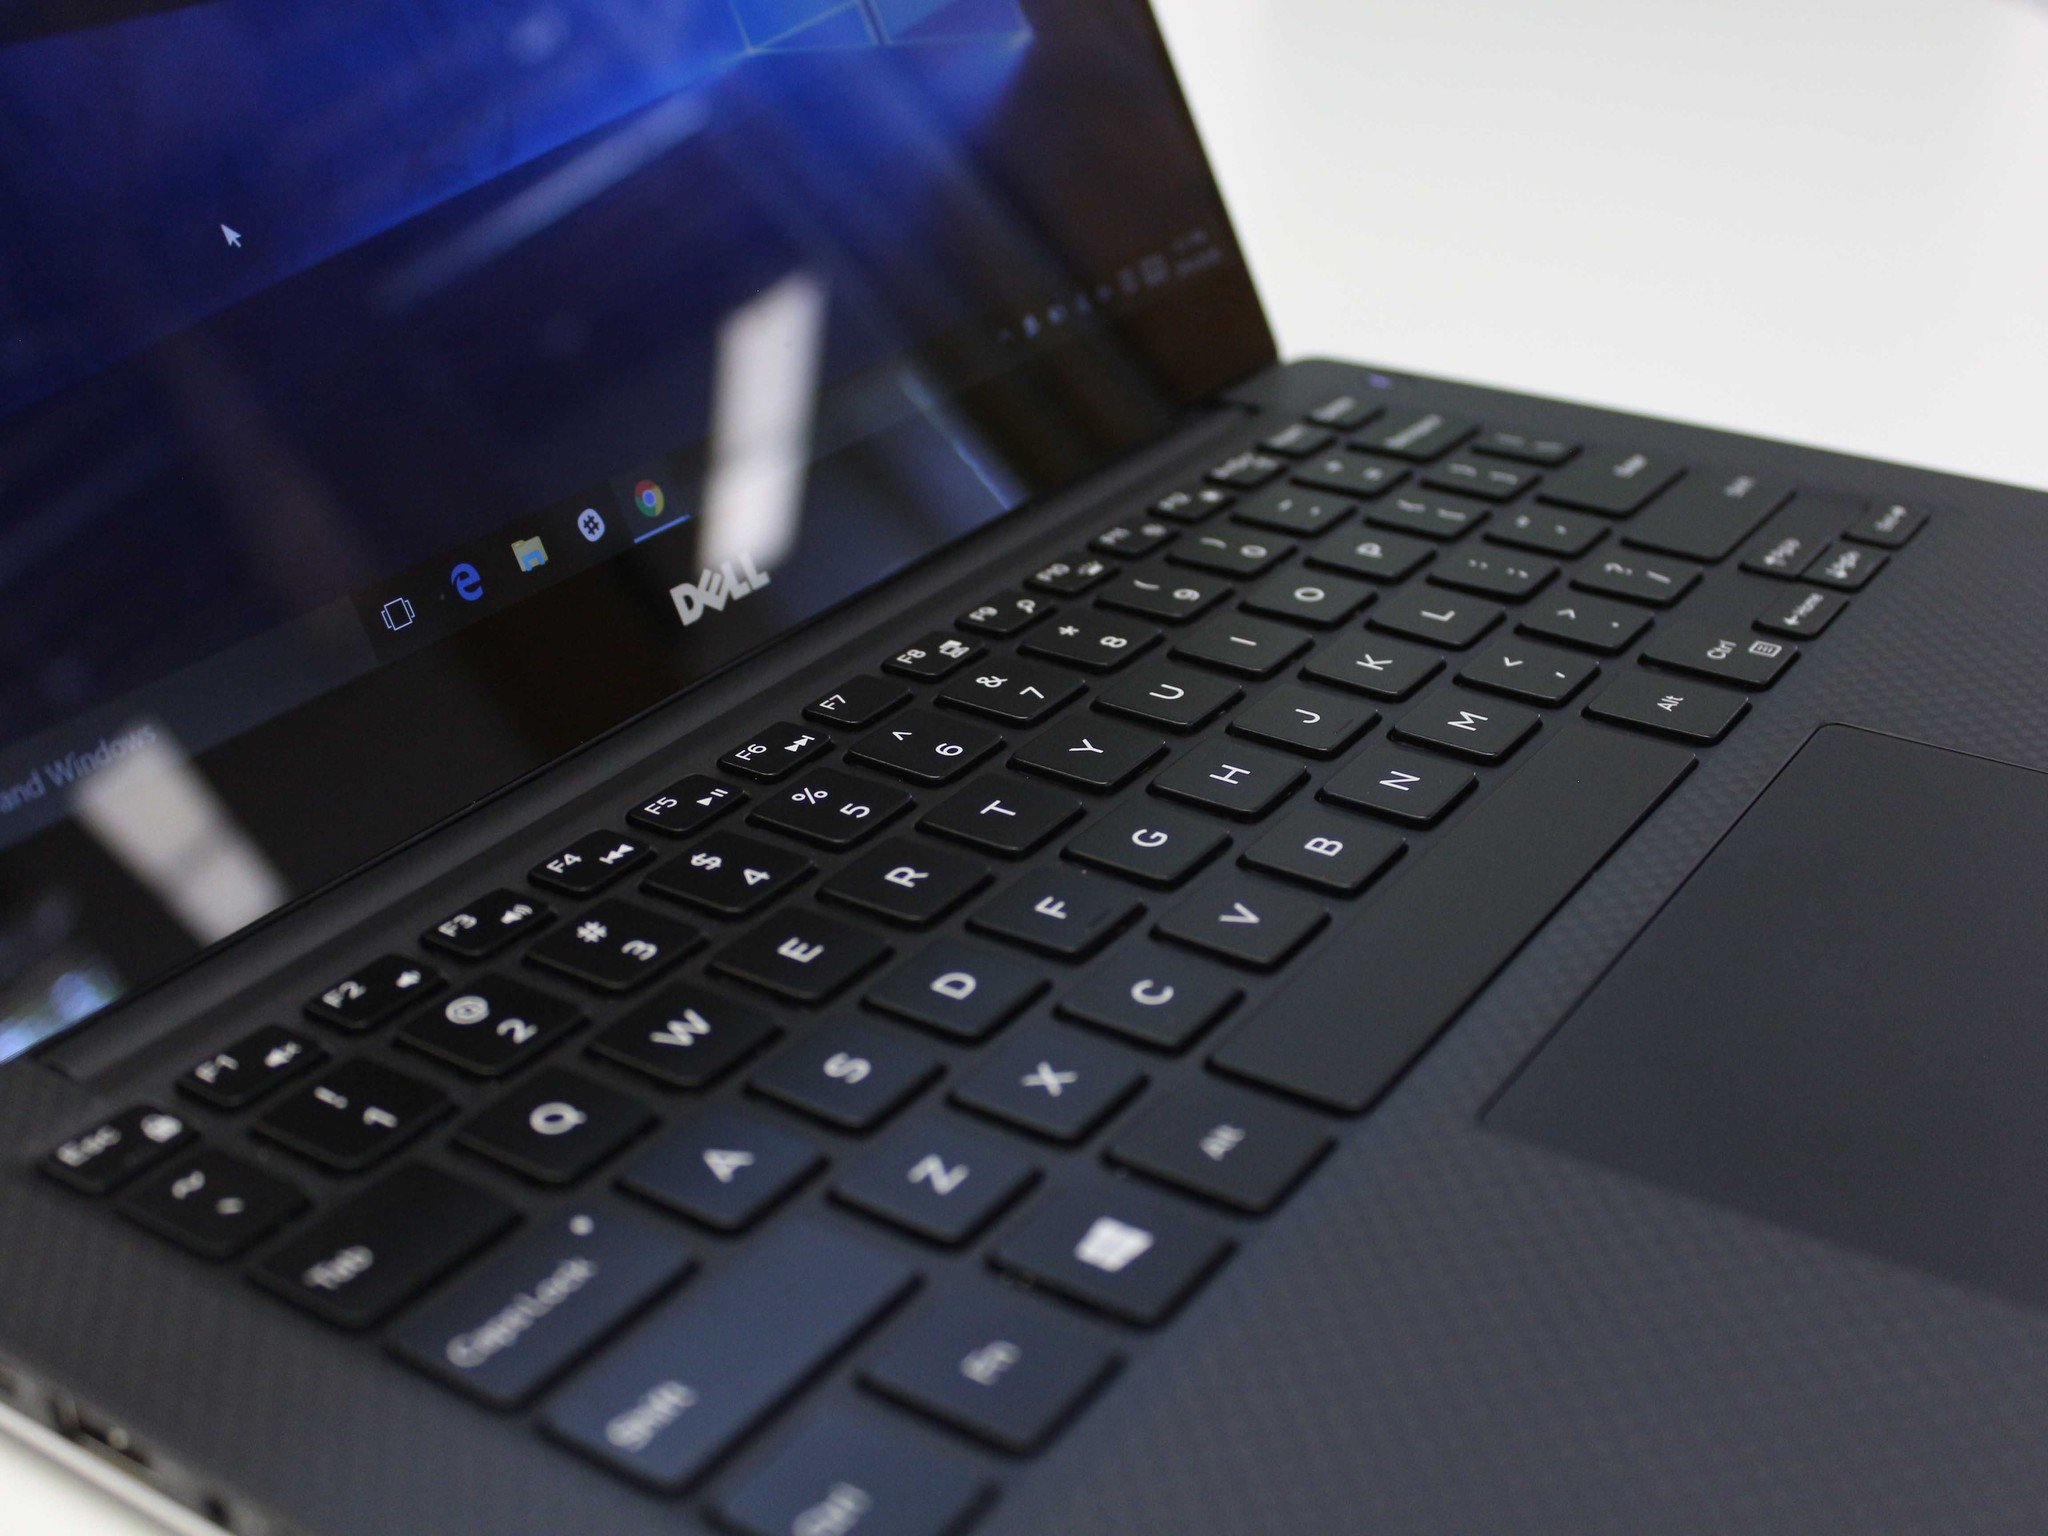 The Ultimate Guide To Windows 10 Keyboard Shortcuts Windows Central